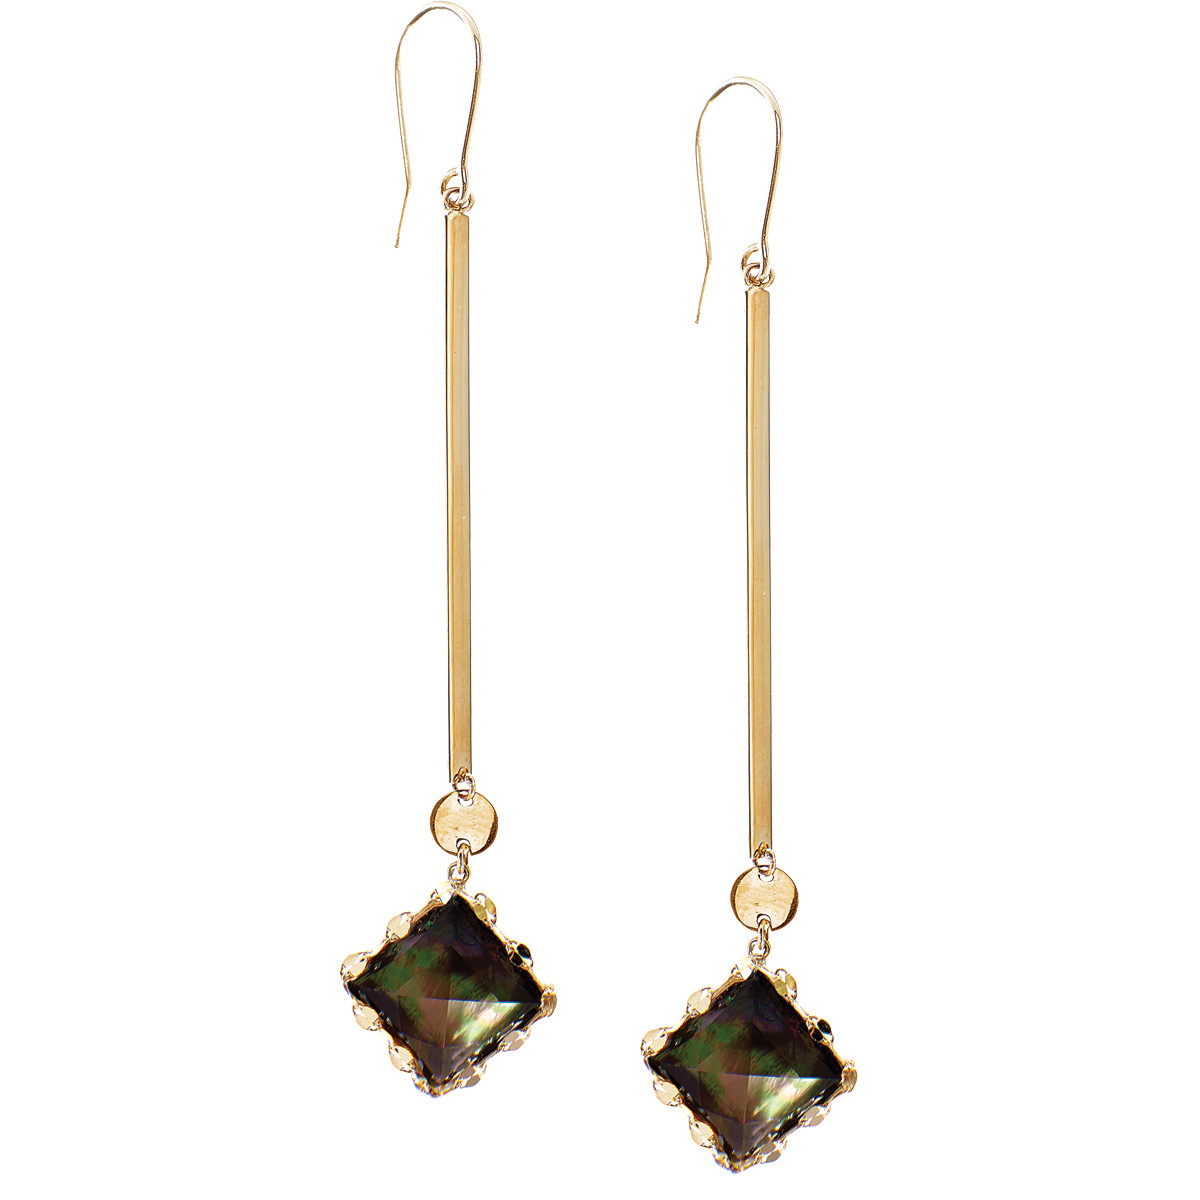 Lana Jewelry Mystiq Bar Earrings